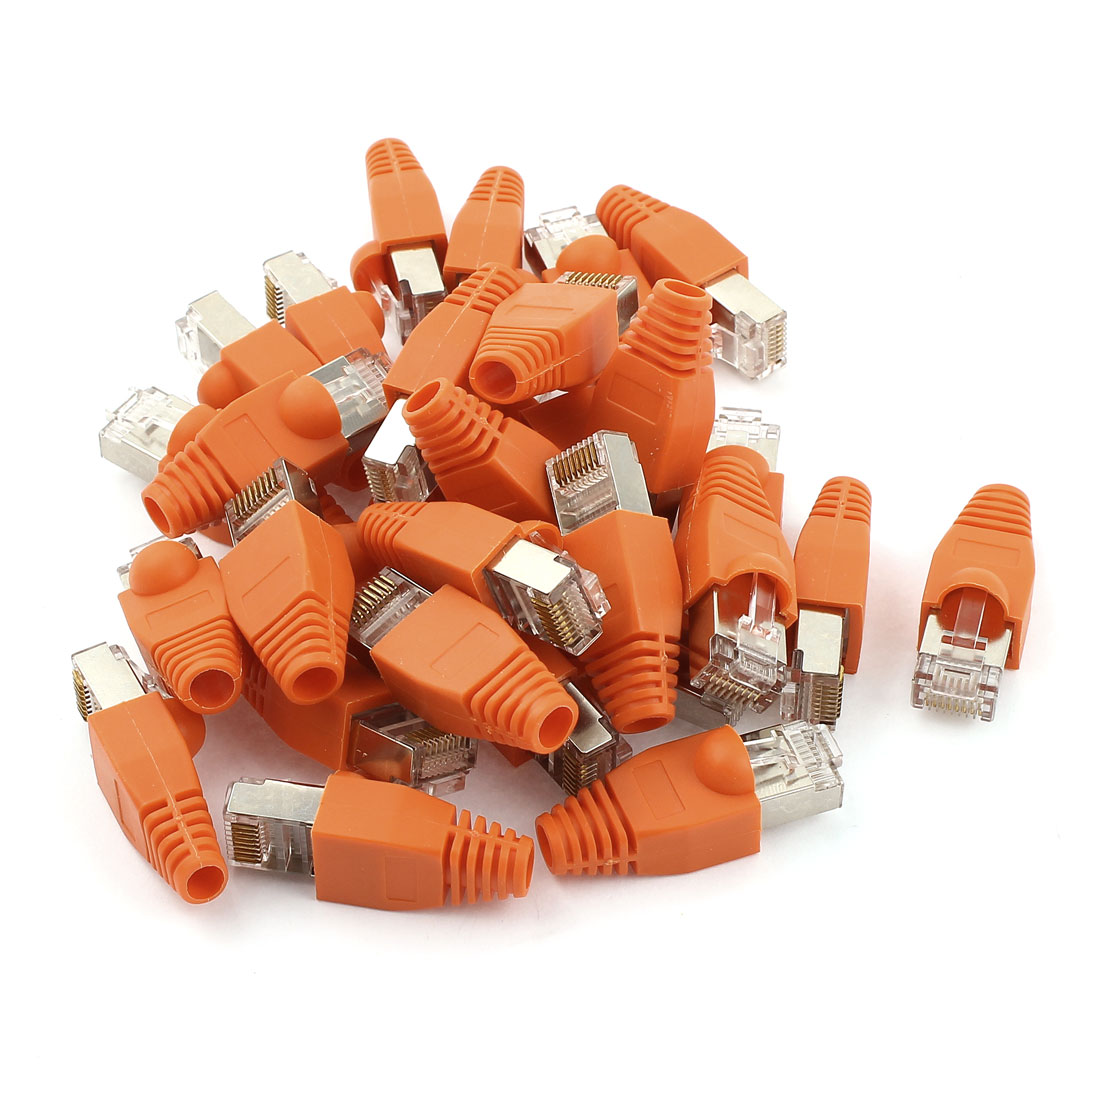 30 Pcs 8P8C Cat6 Patch RJ45 Crystal Cover Modular Plug w Orange Boot Cap